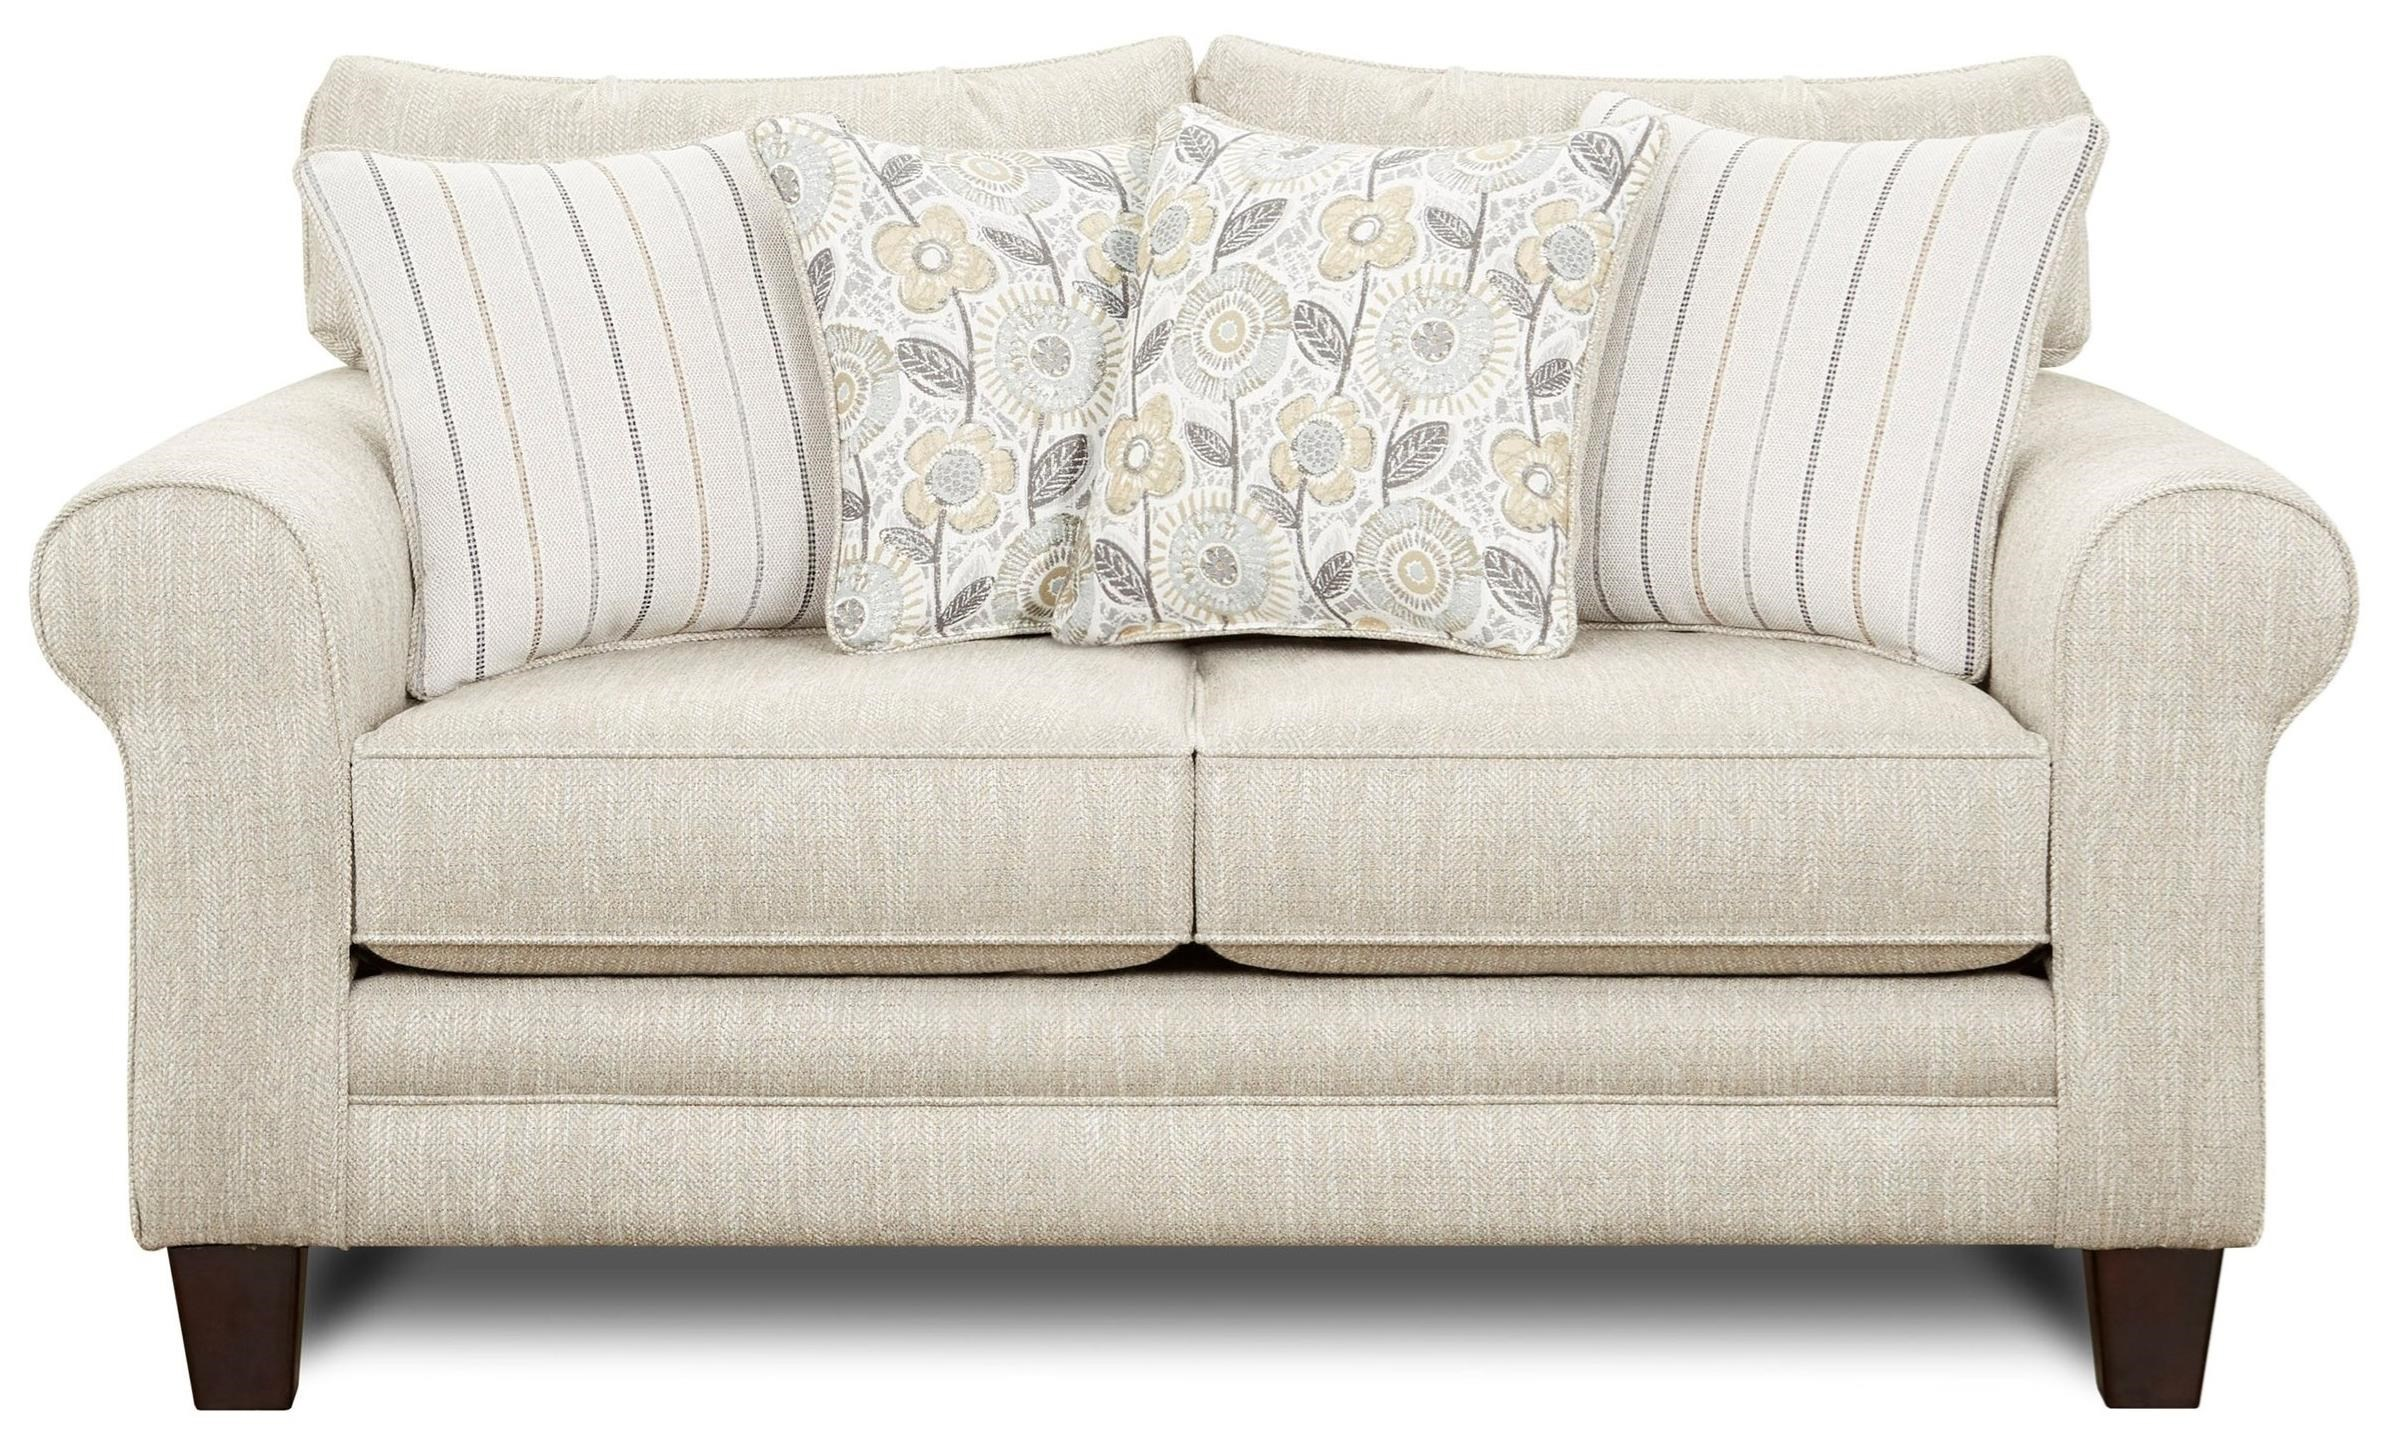 1140 Loveseat by Fusion Furniture at Wilson's Furniture